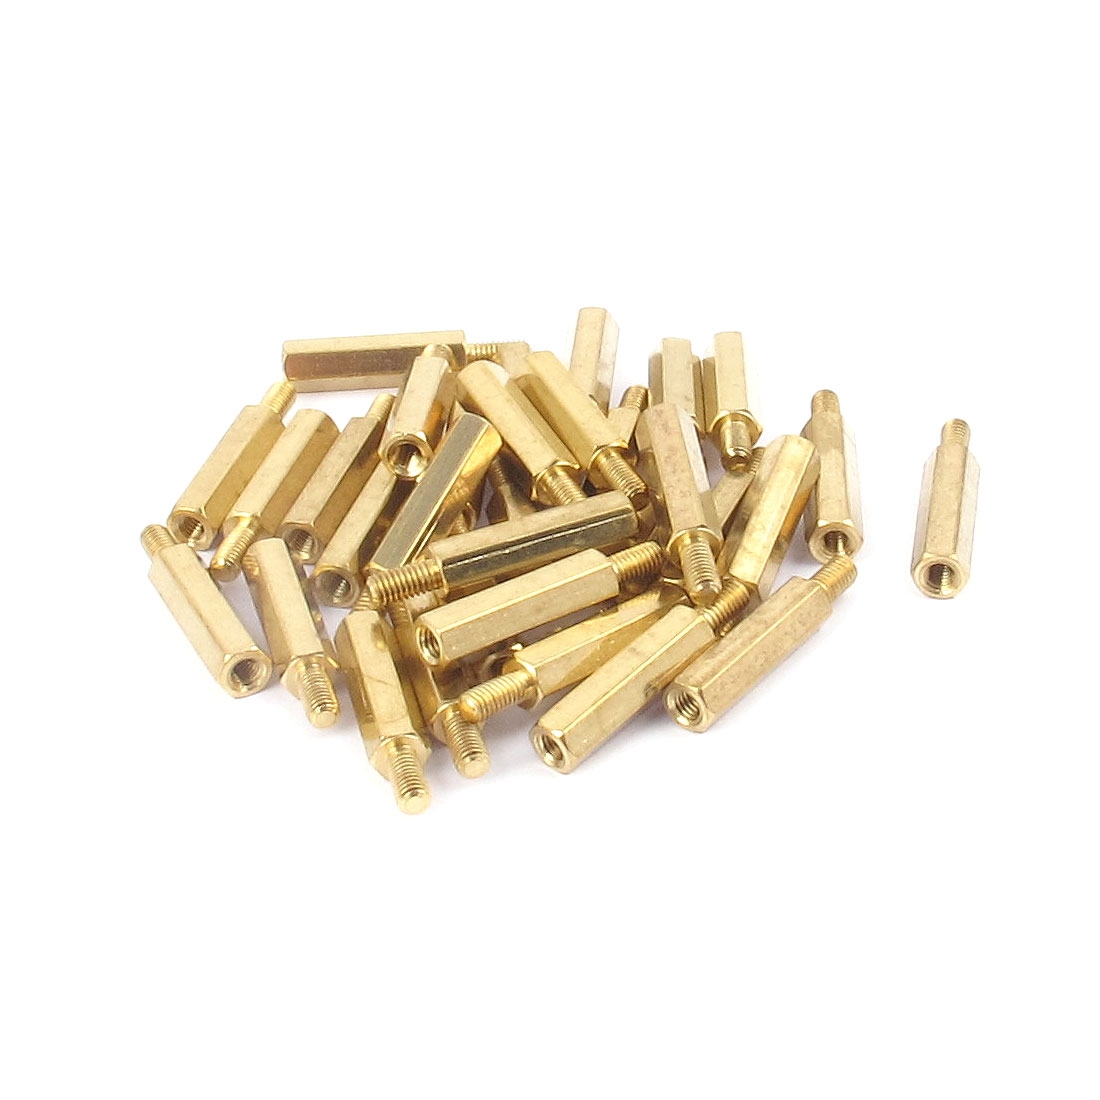 32pcs M3x18mm+6mm Male to Female Brass Hexagon Standoff Stand-off Spacer Pillar for PCB Motherboard